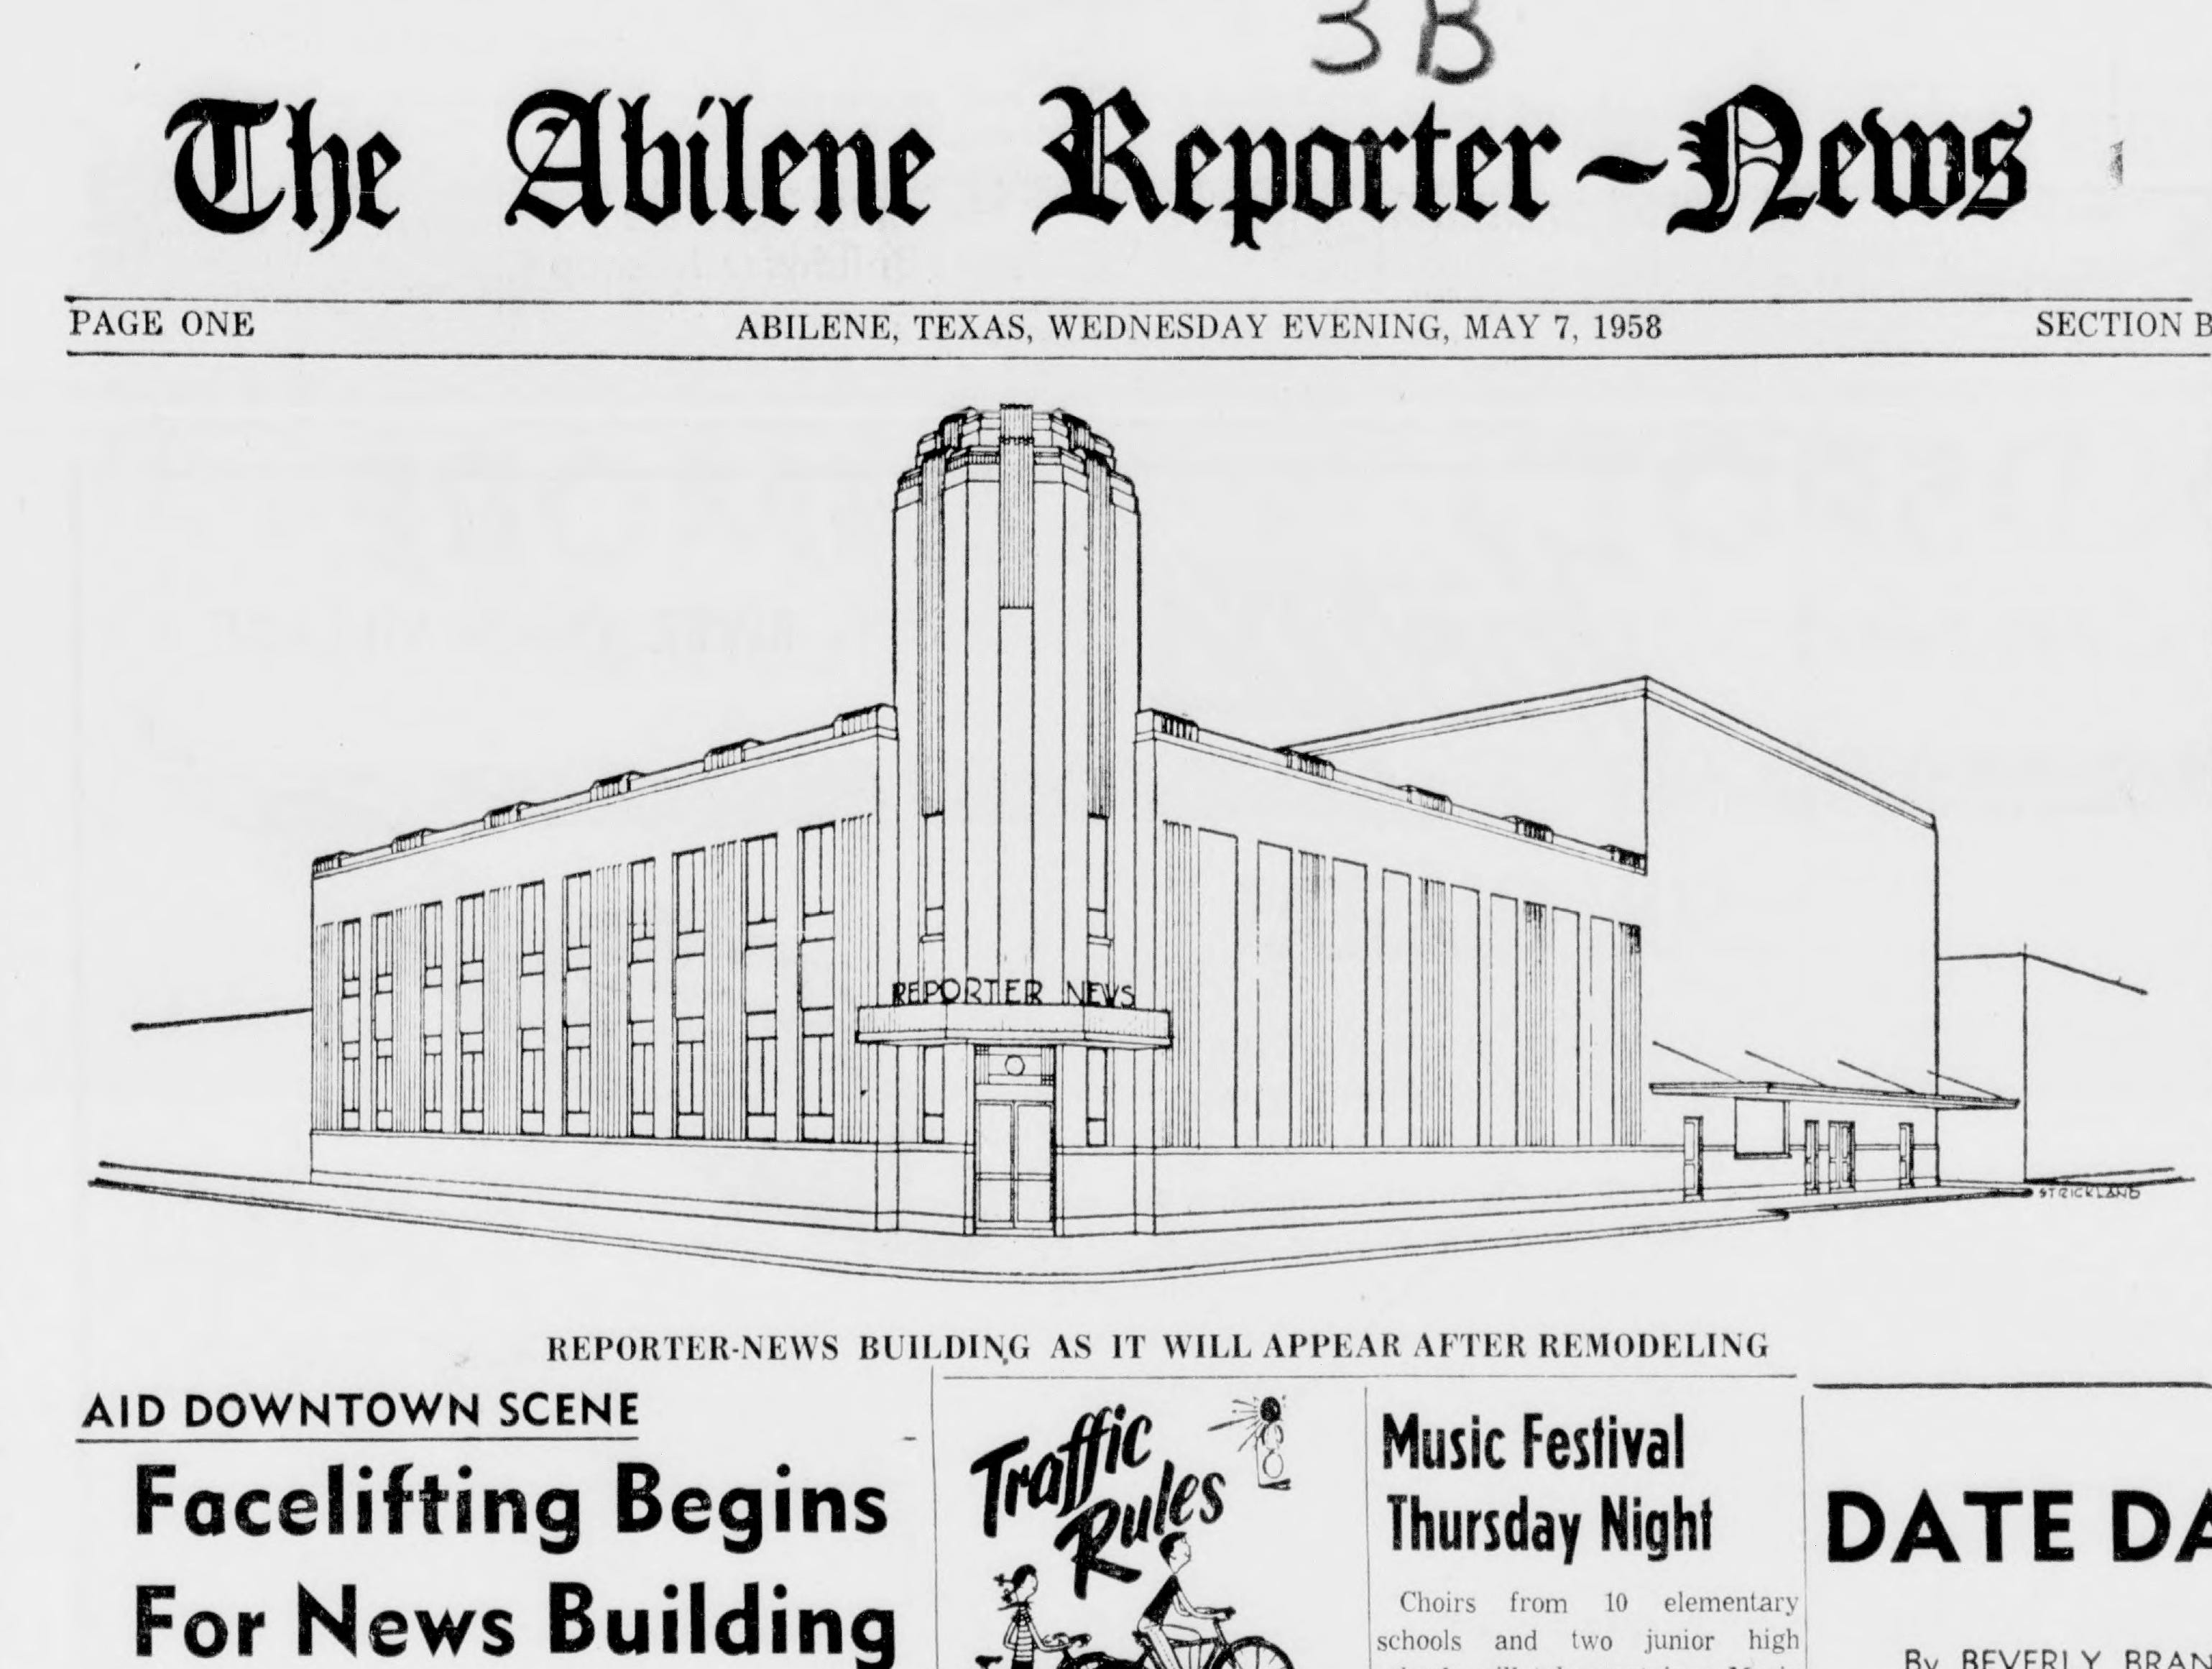 A sketch of the proposed facelift for the Abilene Reporter-News building in 1958.